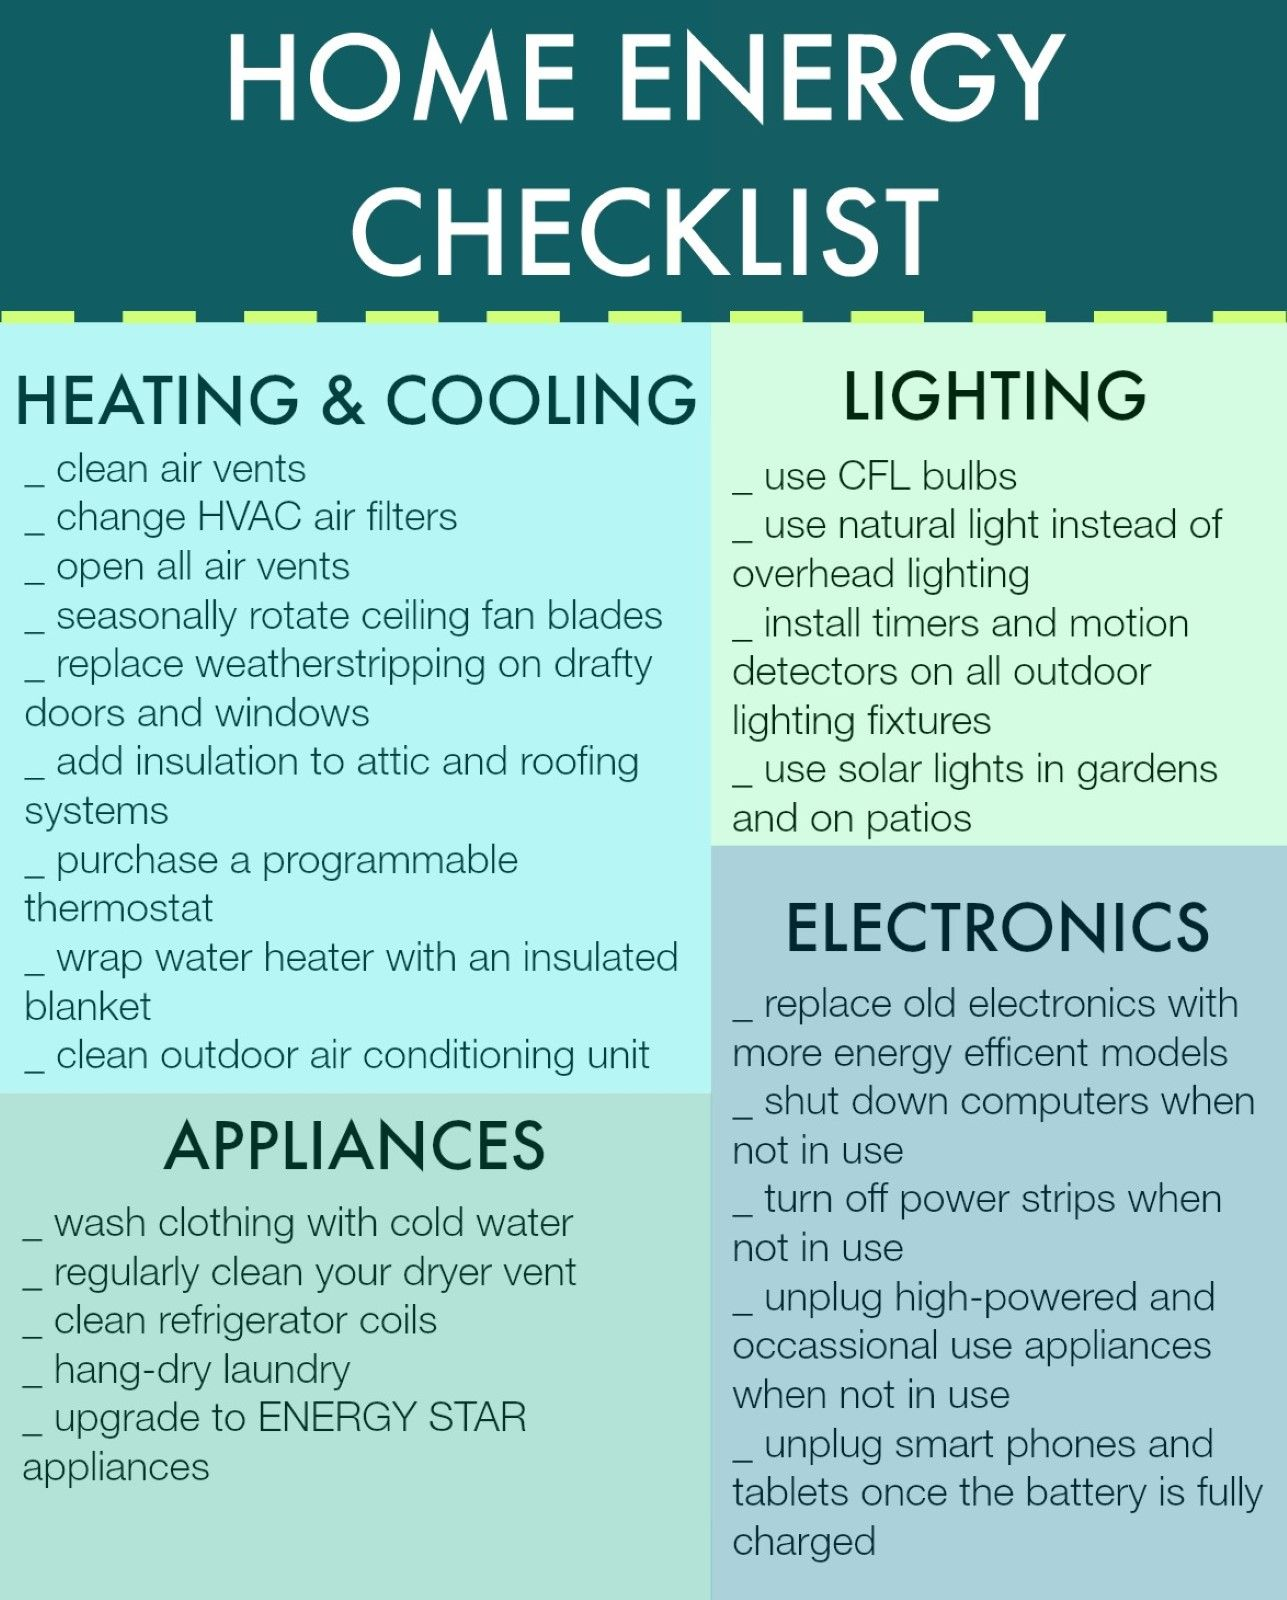 Heating Service Ac Repair Hvac Repair Ac Installation Heating Cooling New Home Checklist Energy Saving Tips Energy Efficient Heating